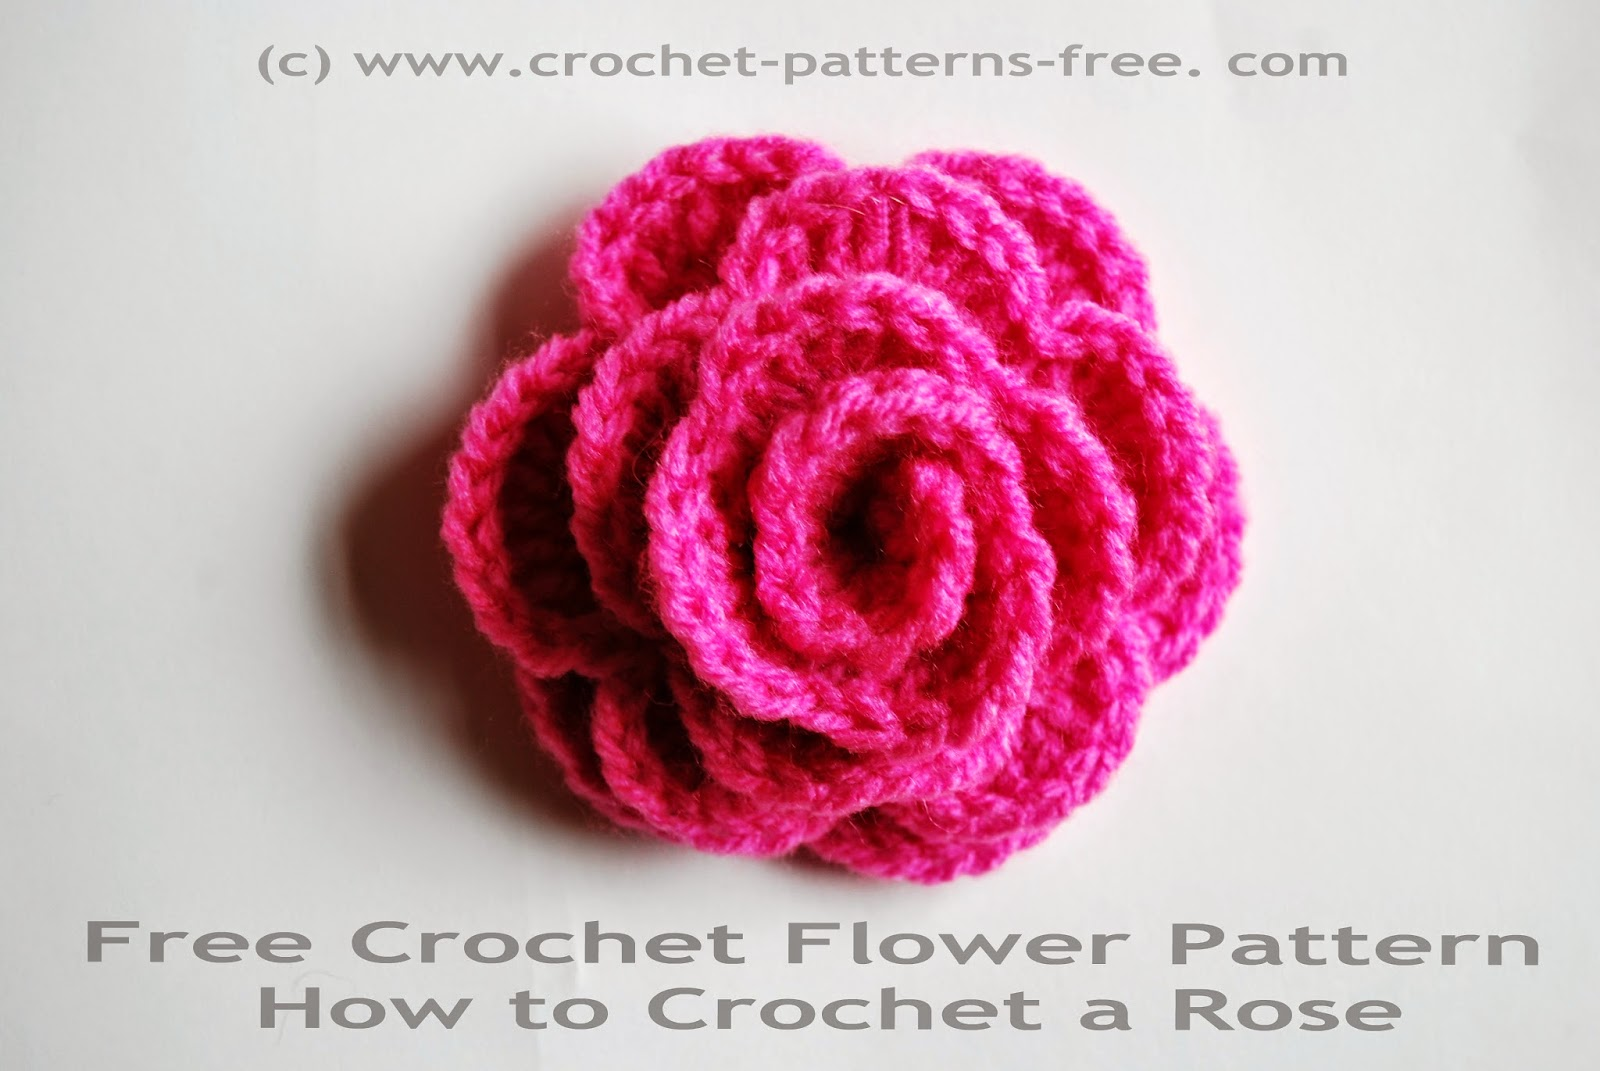 Crochet Thread Rose Pattern Free : Free Crochet Flower Pattern How to crochet a rose FREE ...